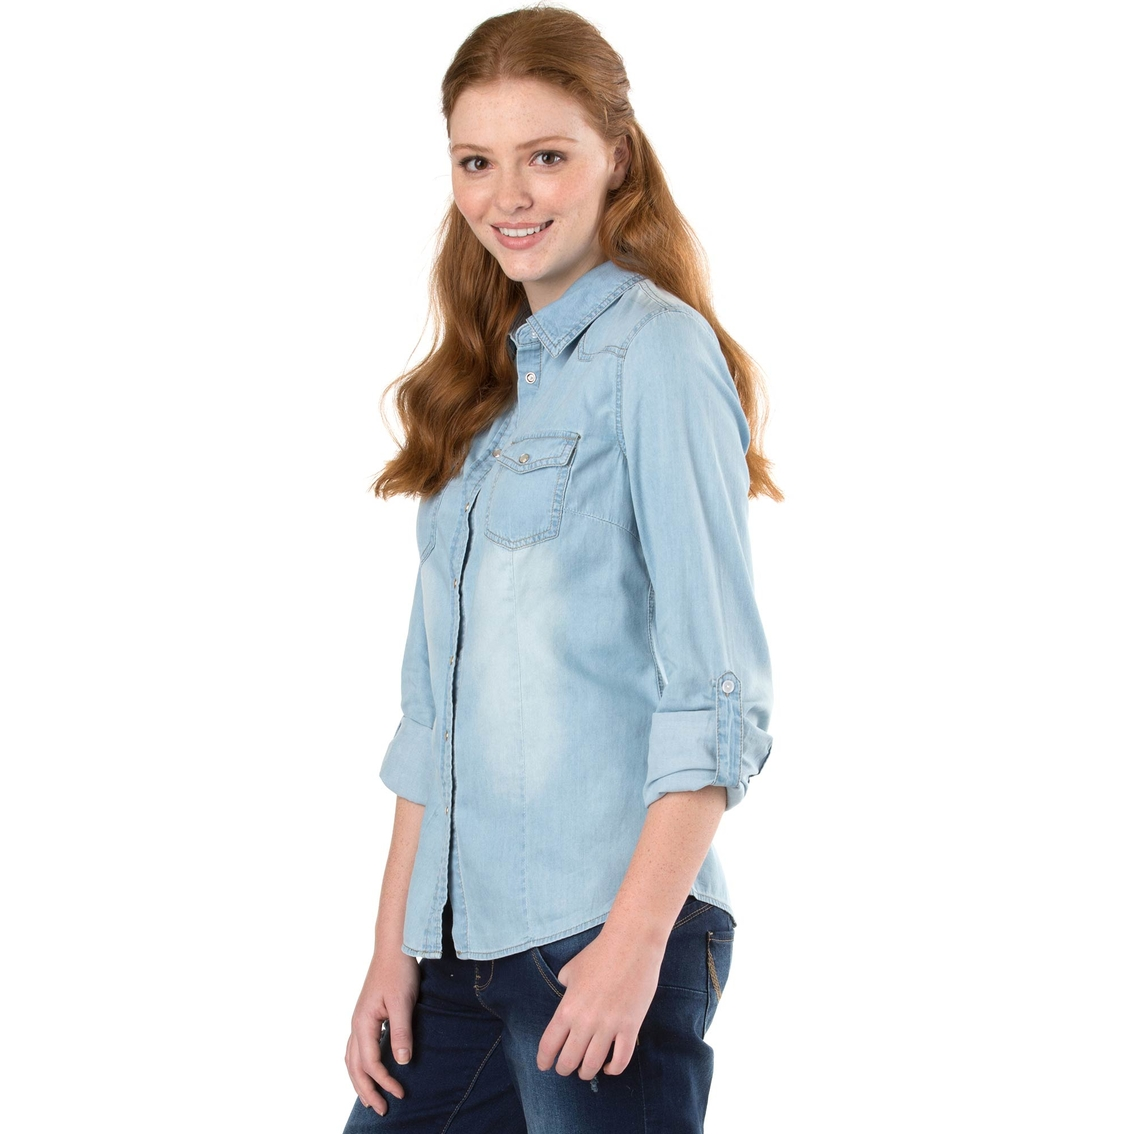 92360372669 Ymi Jeans Juniors Chambray Top | Juniors' Apparel | Shop The Exchange